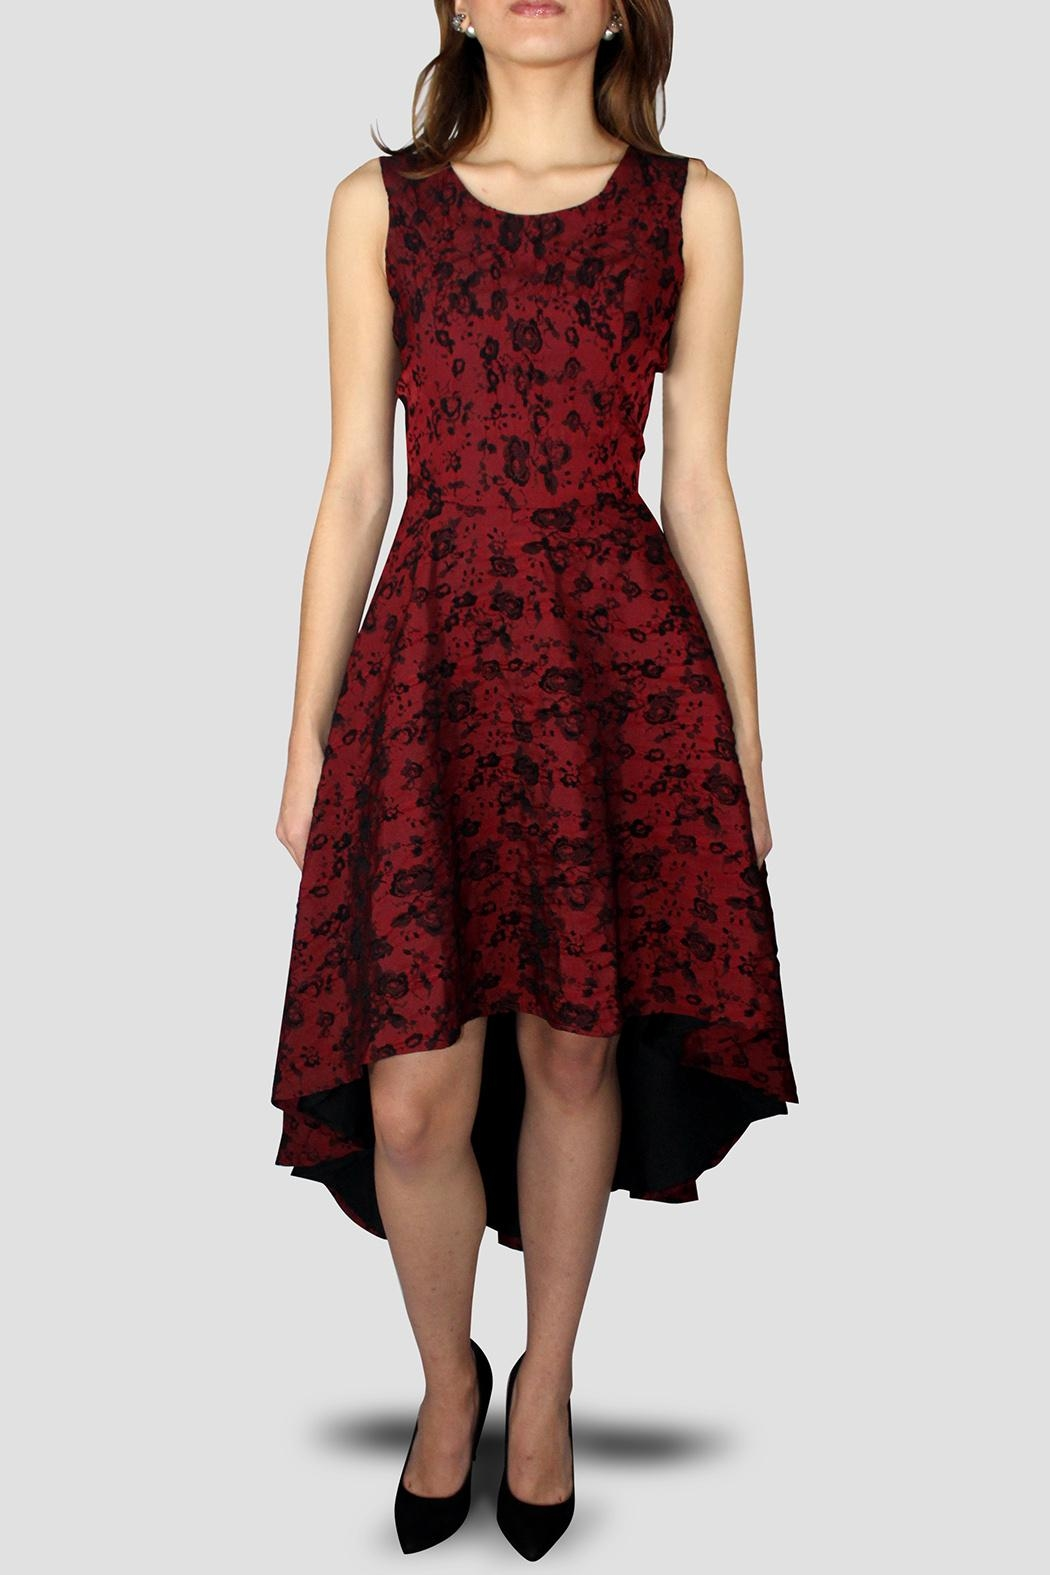 SoZu Asymmetric Brocade Dress - Front Cropped Image